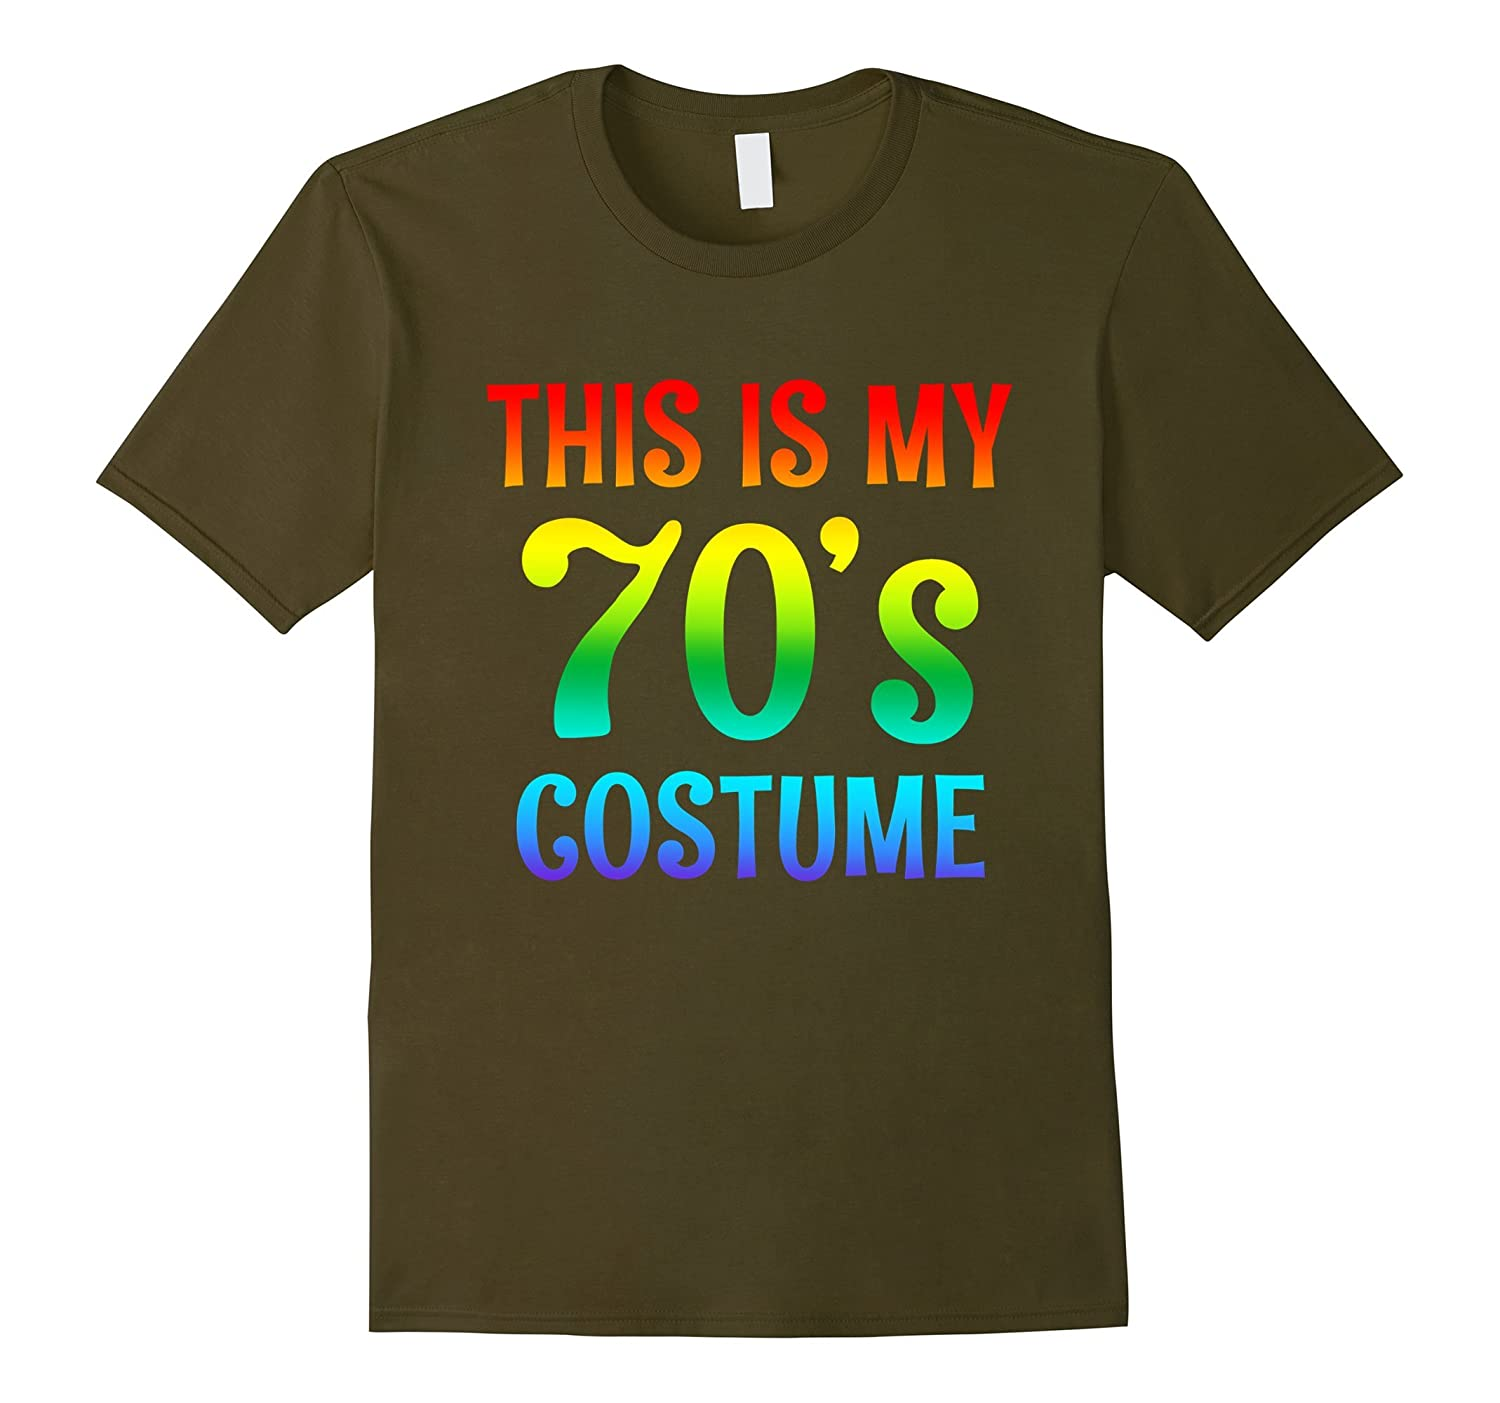 70s Costume Halloween Shirt for 1970s Party men women top-ah my shirt one gift